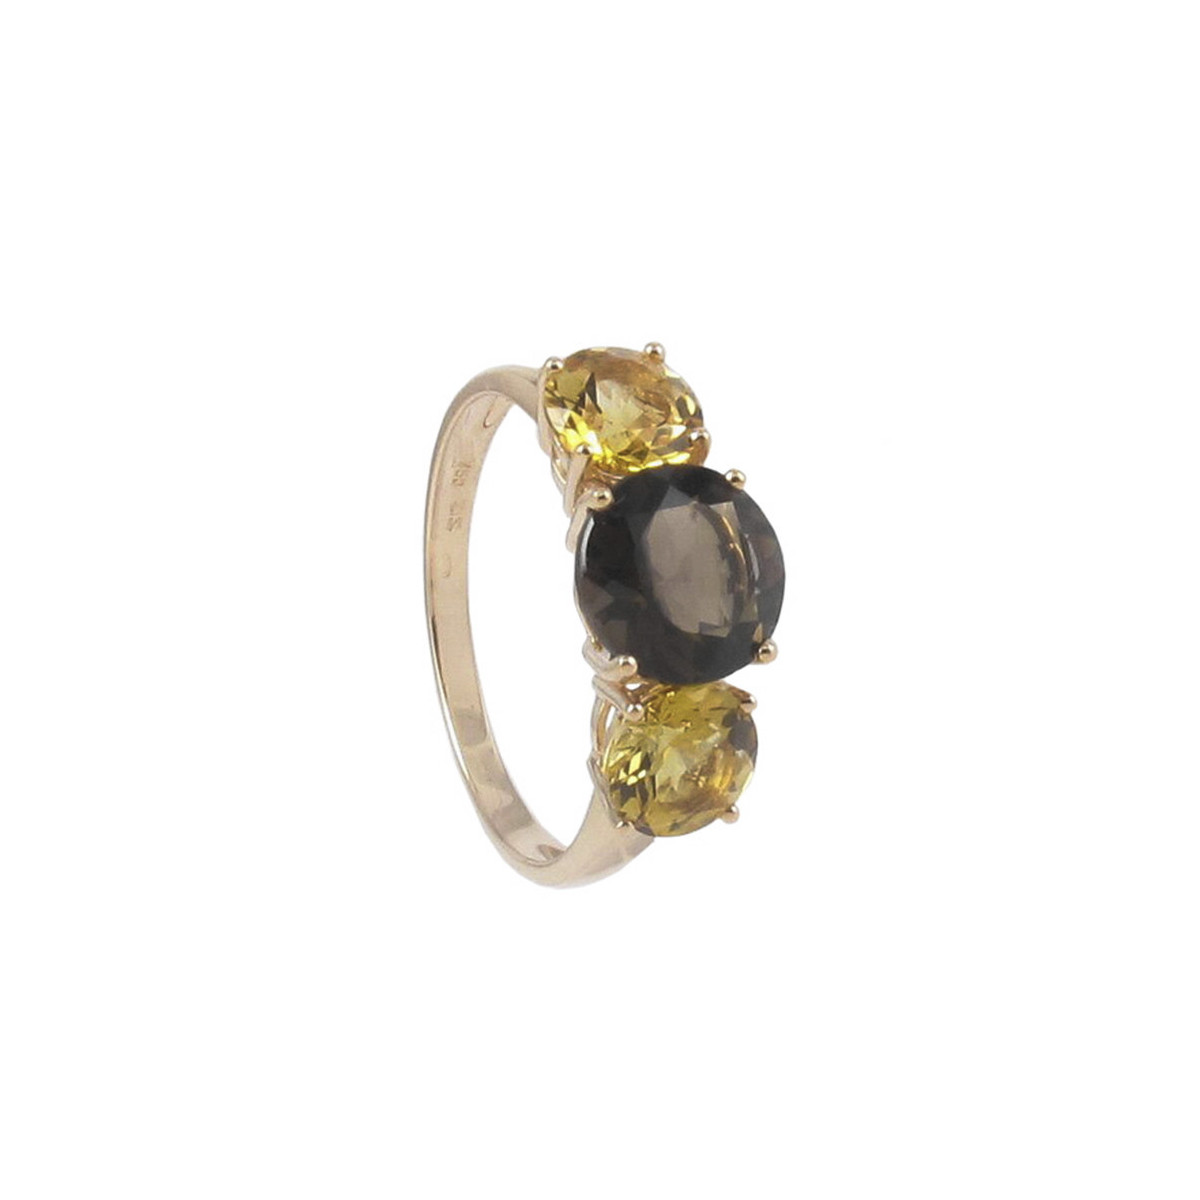 GOLD RING WITH SMOKED QUARTZ AND 2 CITRINES